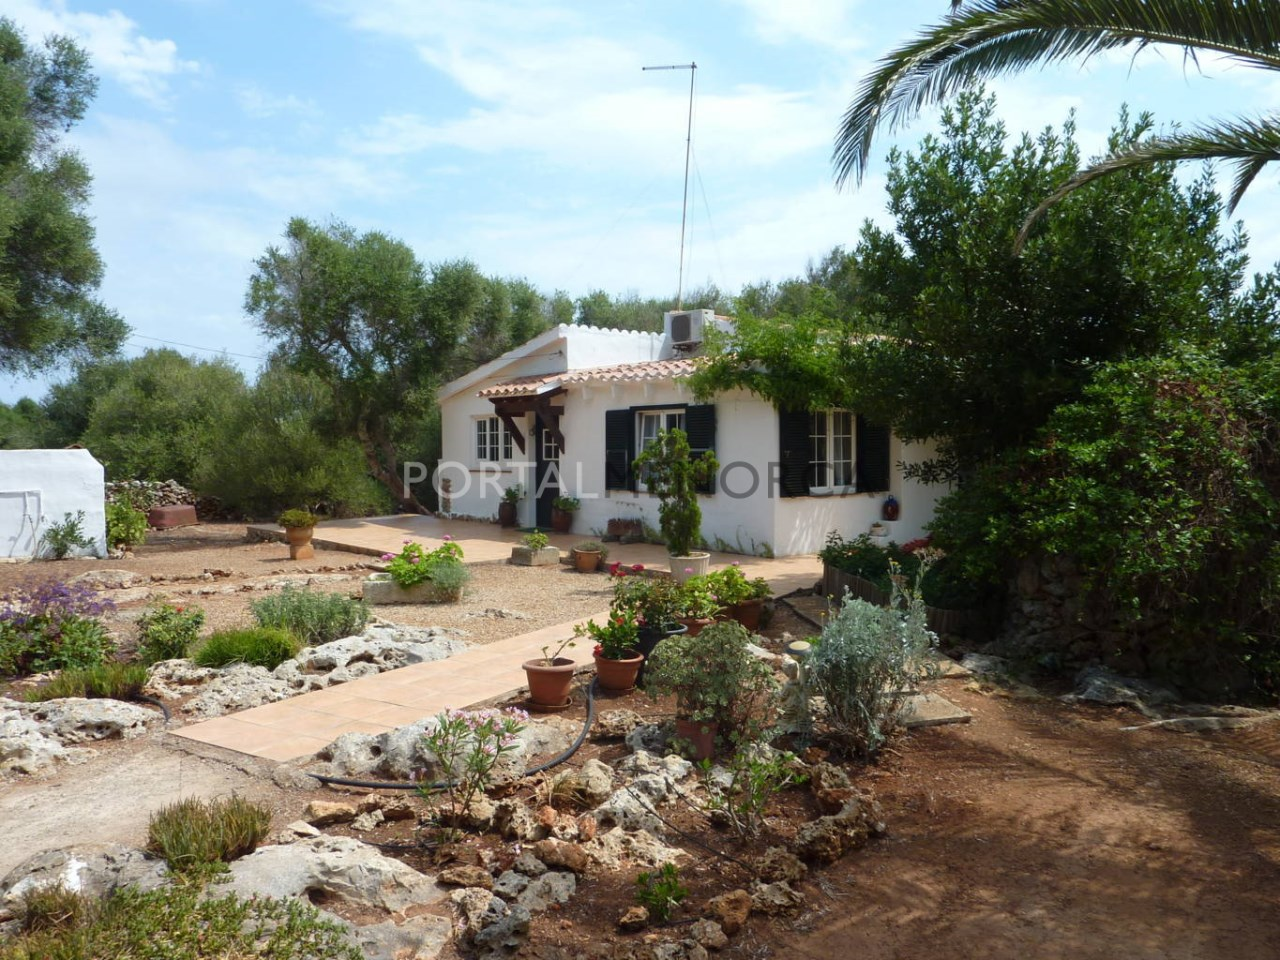 Beautiful country house for sale in Sant Lluis